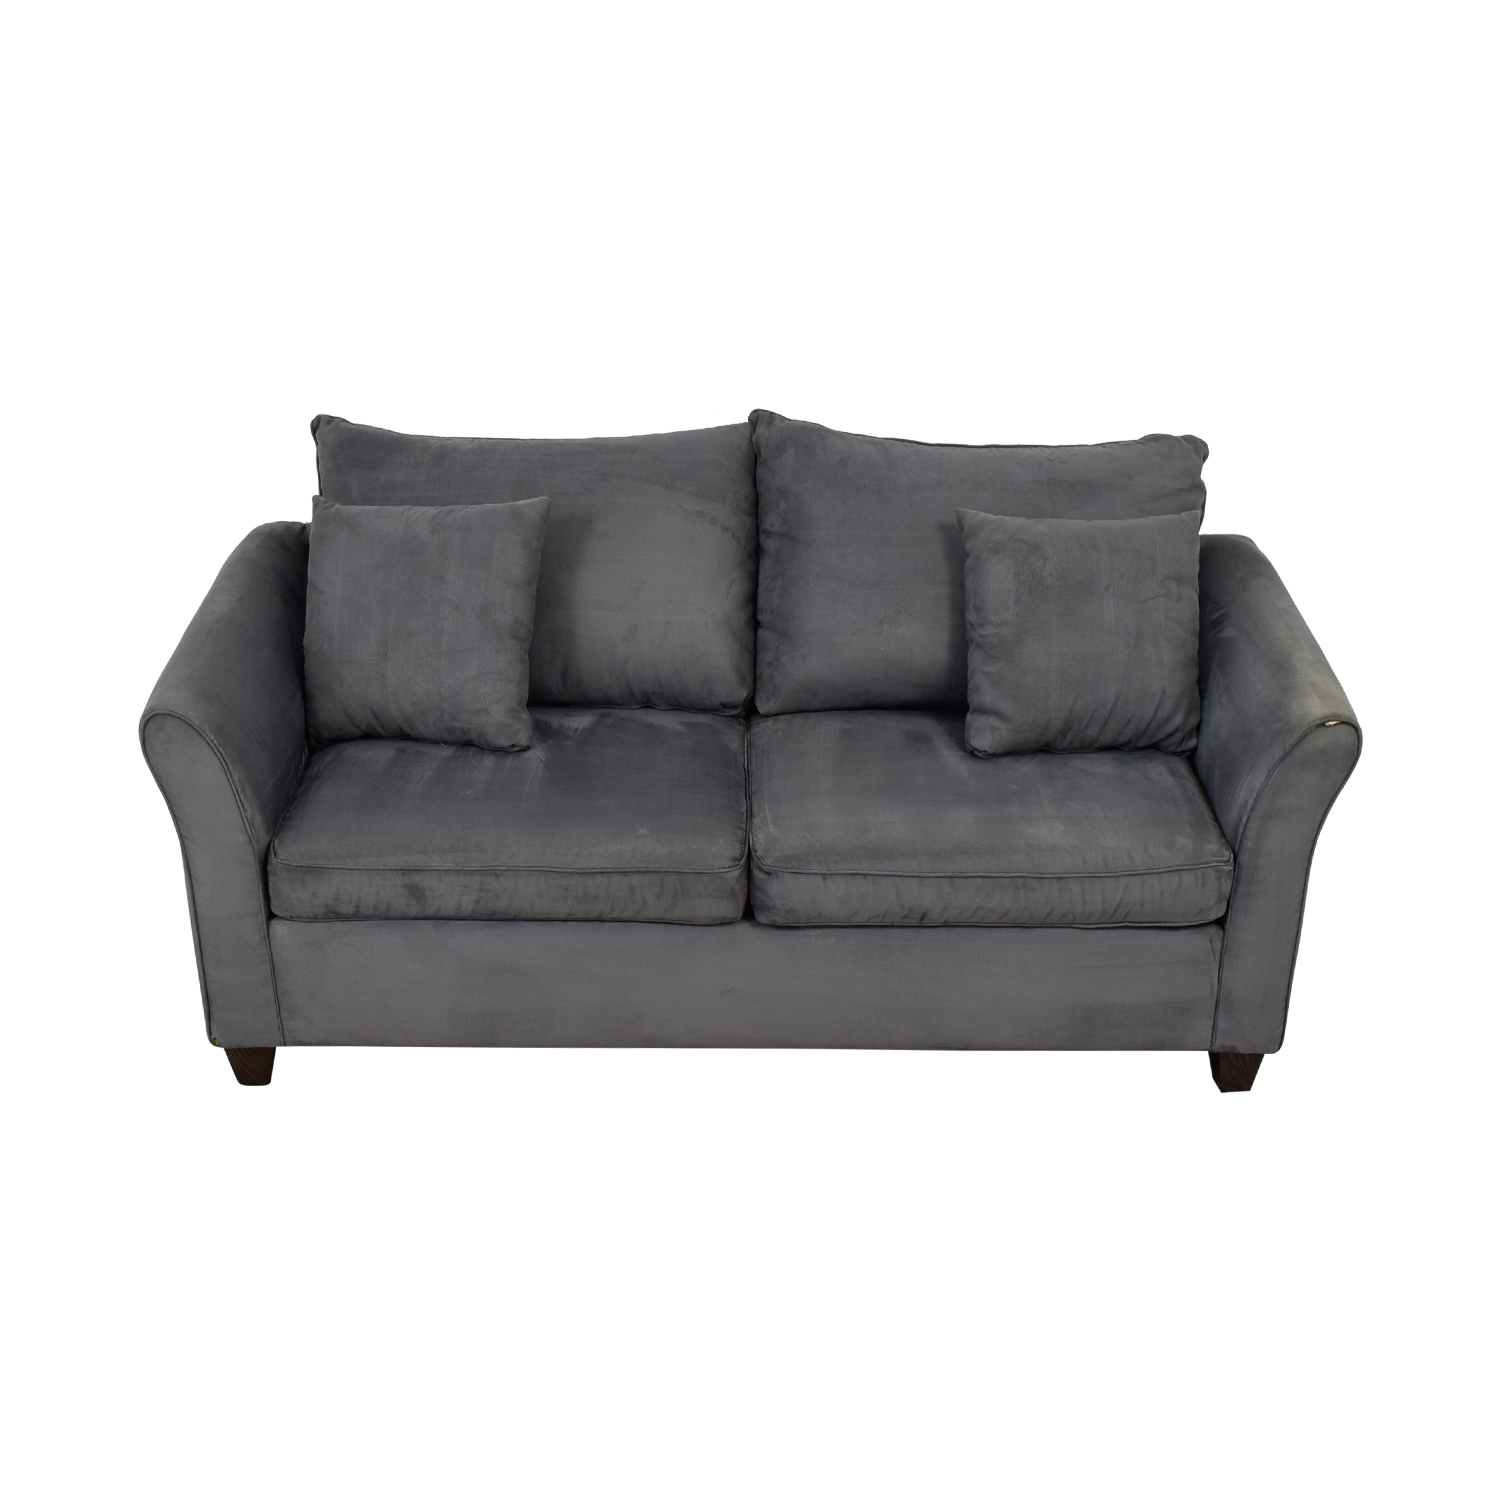 Younger Furniture Younger Furniture Grey Microsuede Love Seat for sale